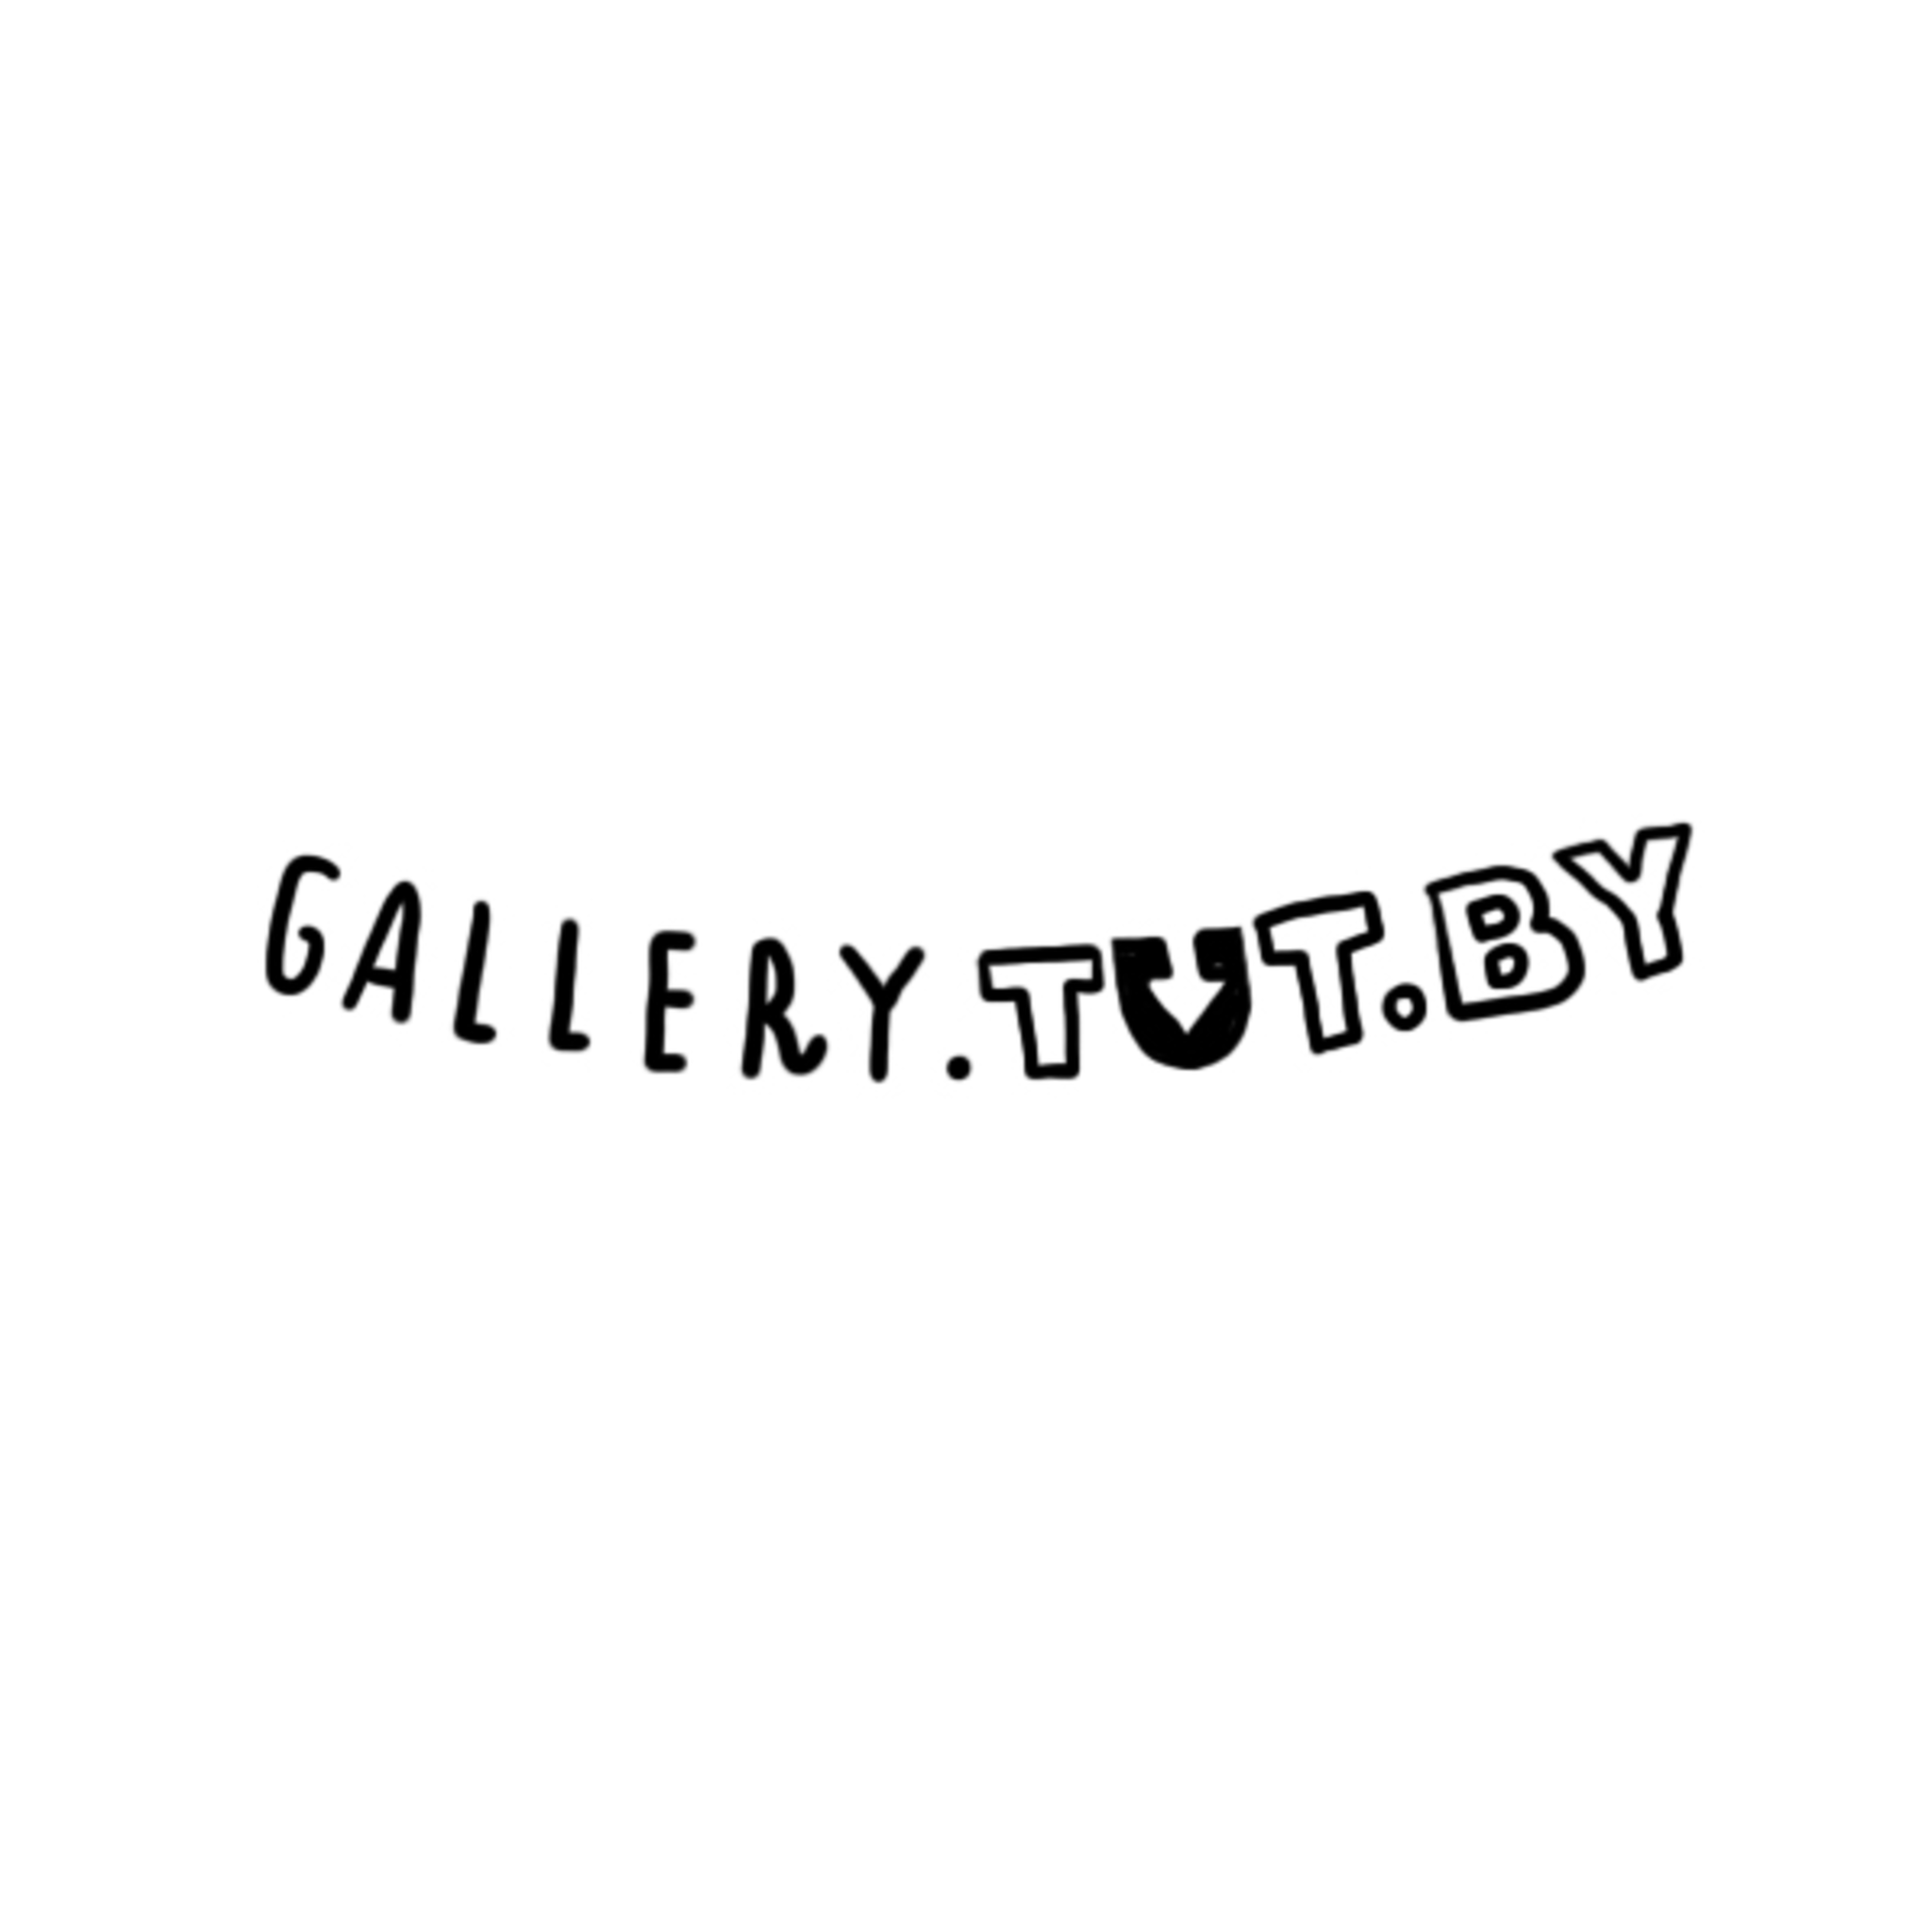 Gallery TUT.BY